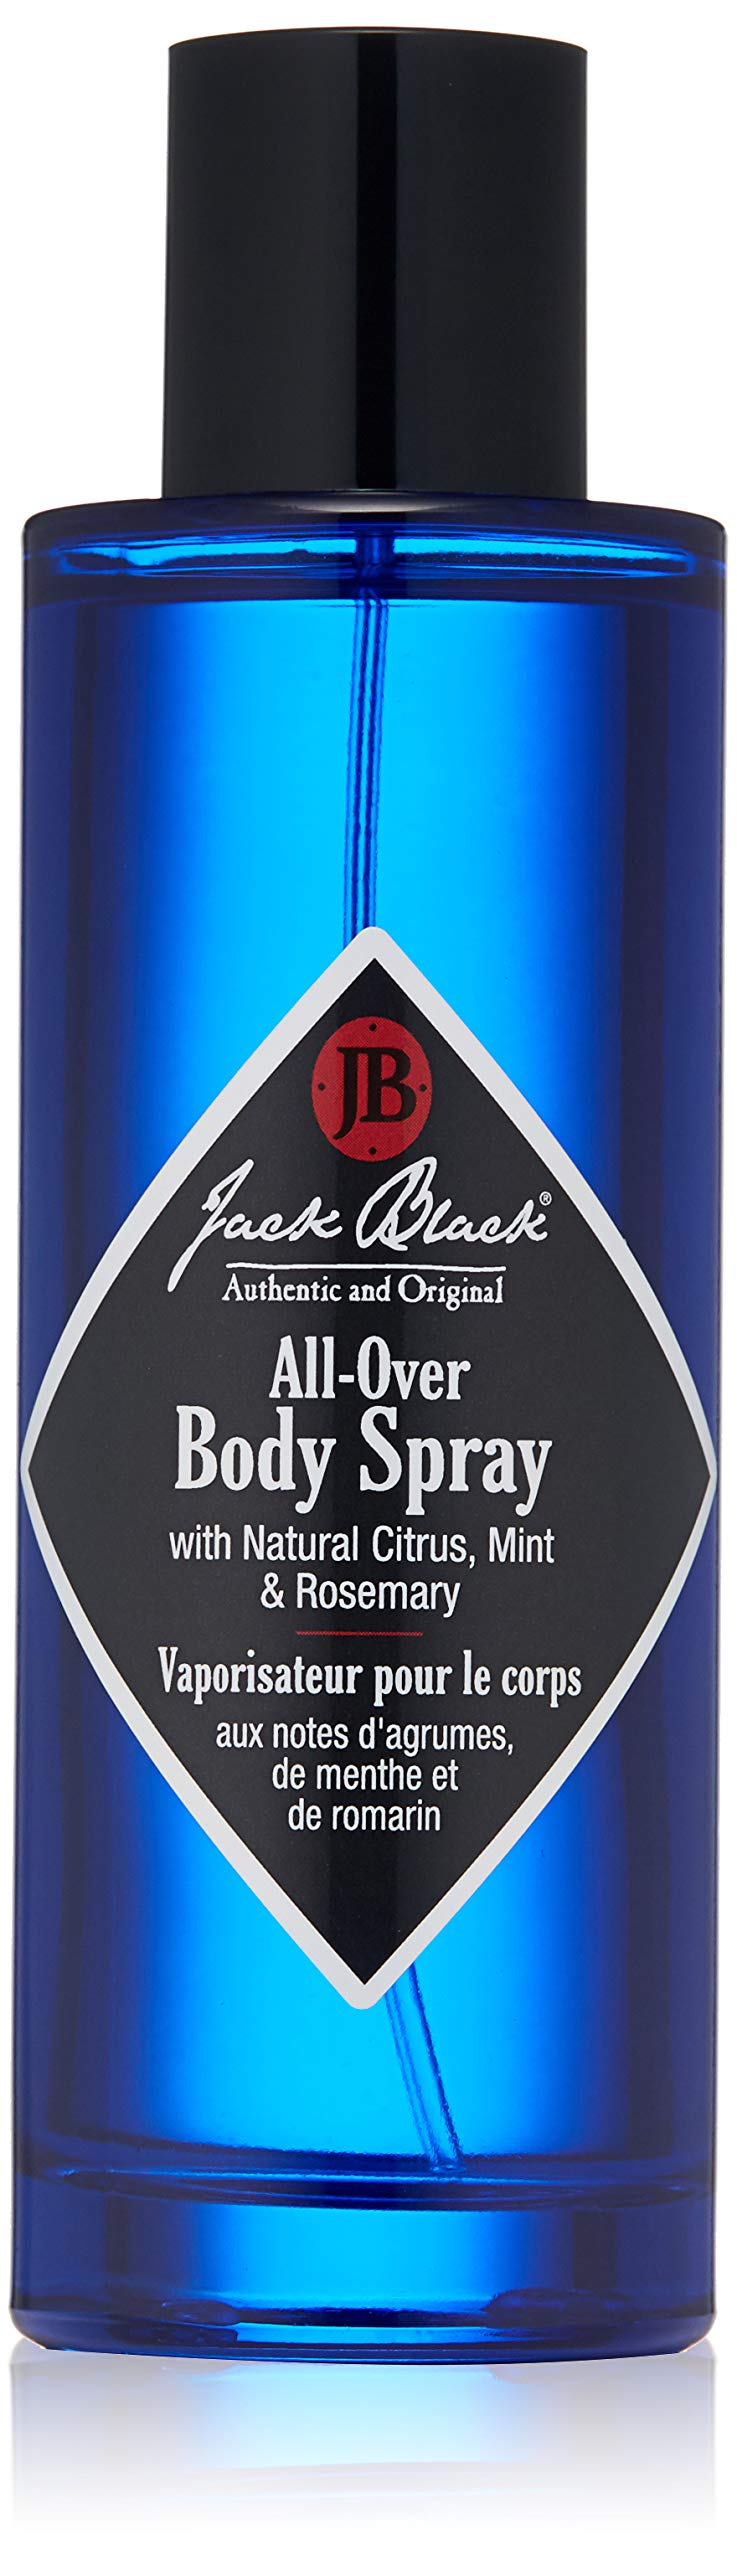 Jack Black - All-Over Body Spray, 3.4 fl oz - Natural Citrus Aroma, Herbal Notes of Mint and Rosemary, Lightweight Fragrance by Jack Black